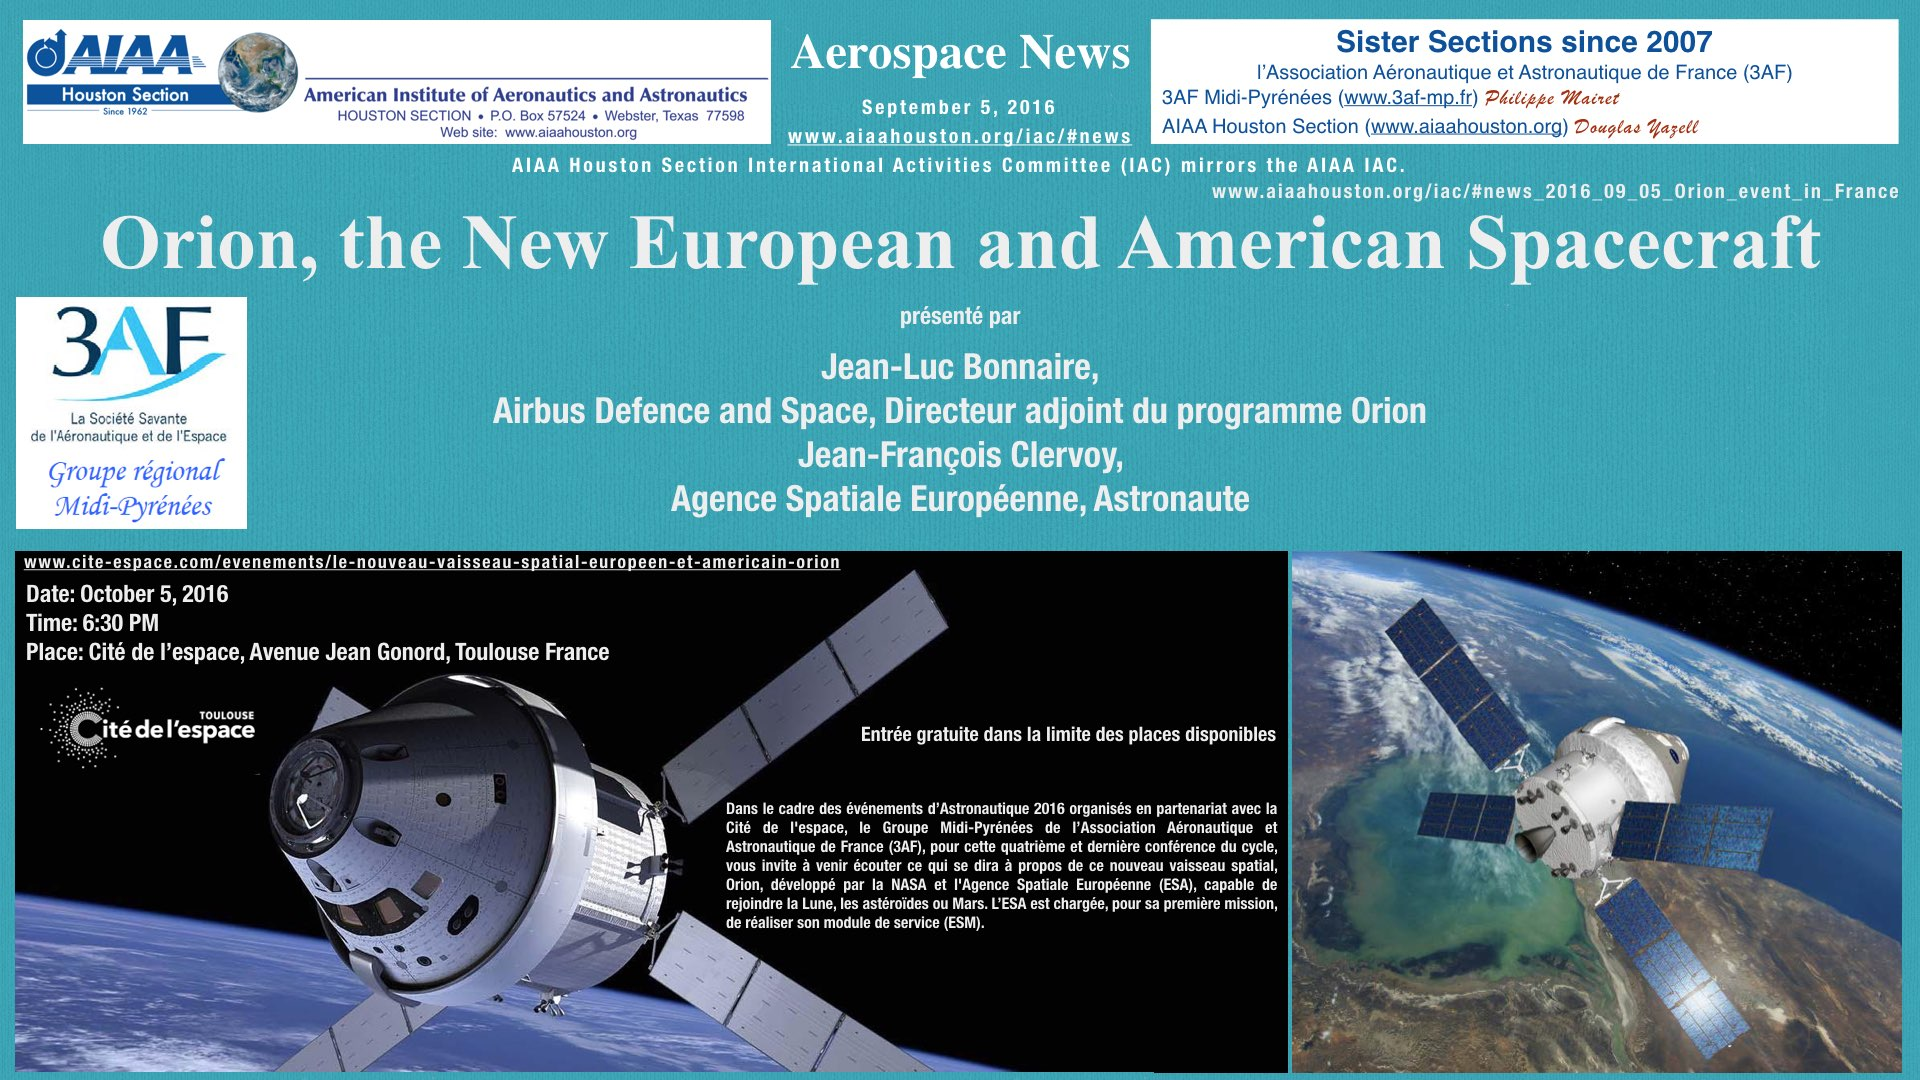 Above: Orion, the New European and American Spacecraft. Date: October 5, 2016. Time: 6:30 PM. Place: Cité de l'space, Toulouse France. (Click to zoom on this JPEG (362 KB) image.) The PDF version (850 KB, with working hyperlinks) of this image is available here.